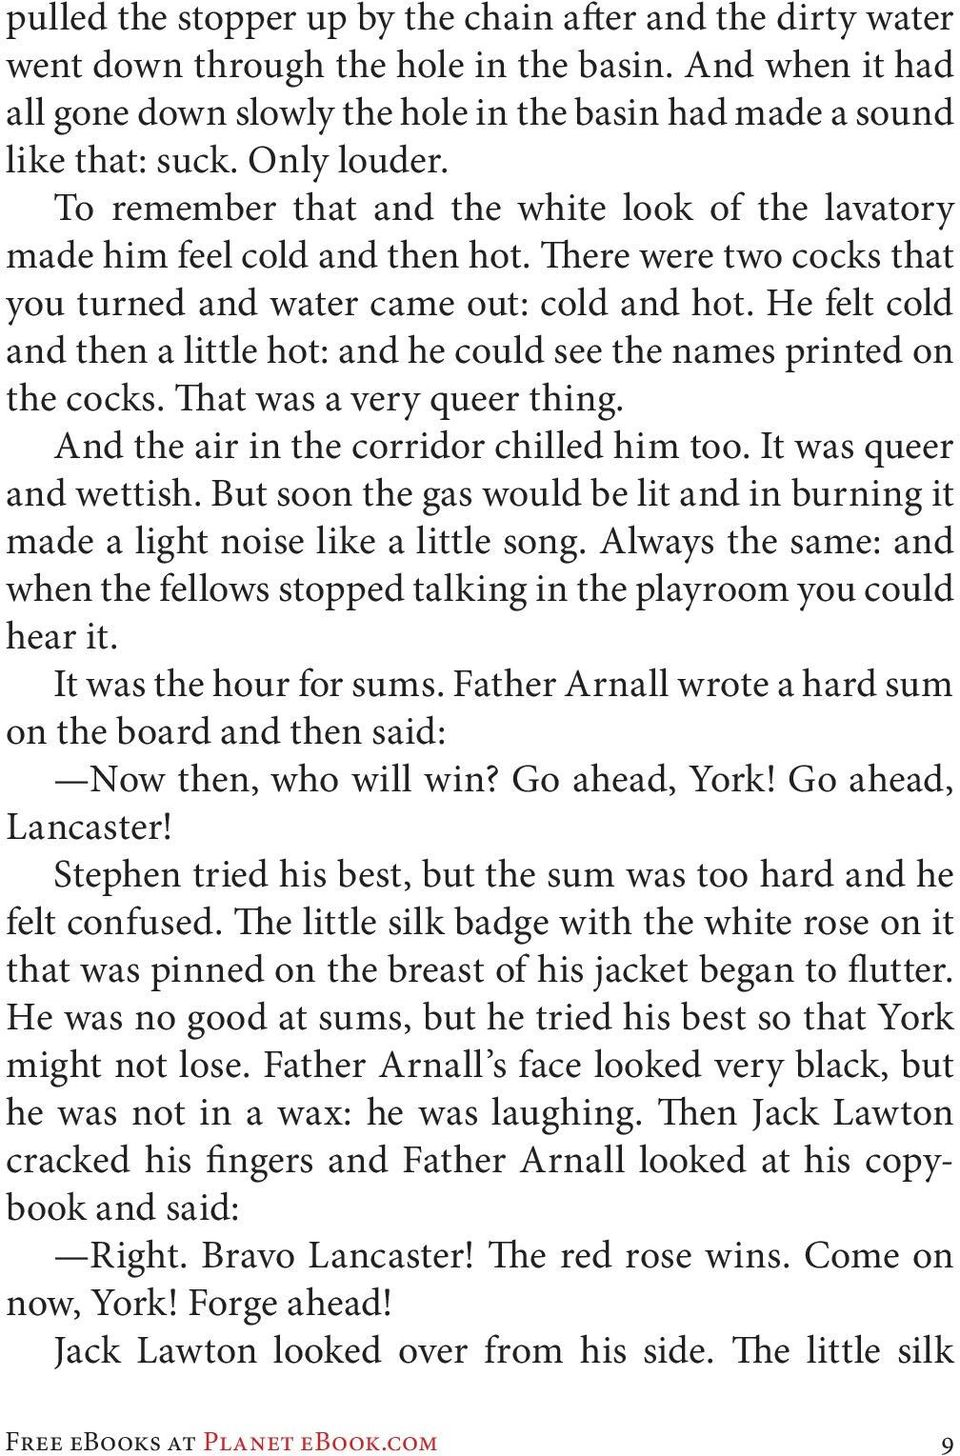 He felt cold and then a little hot: and he could see the names printed on the cocks. That was a very queer thing. And the air in the corridor chilled him too. It was queer and wettish.